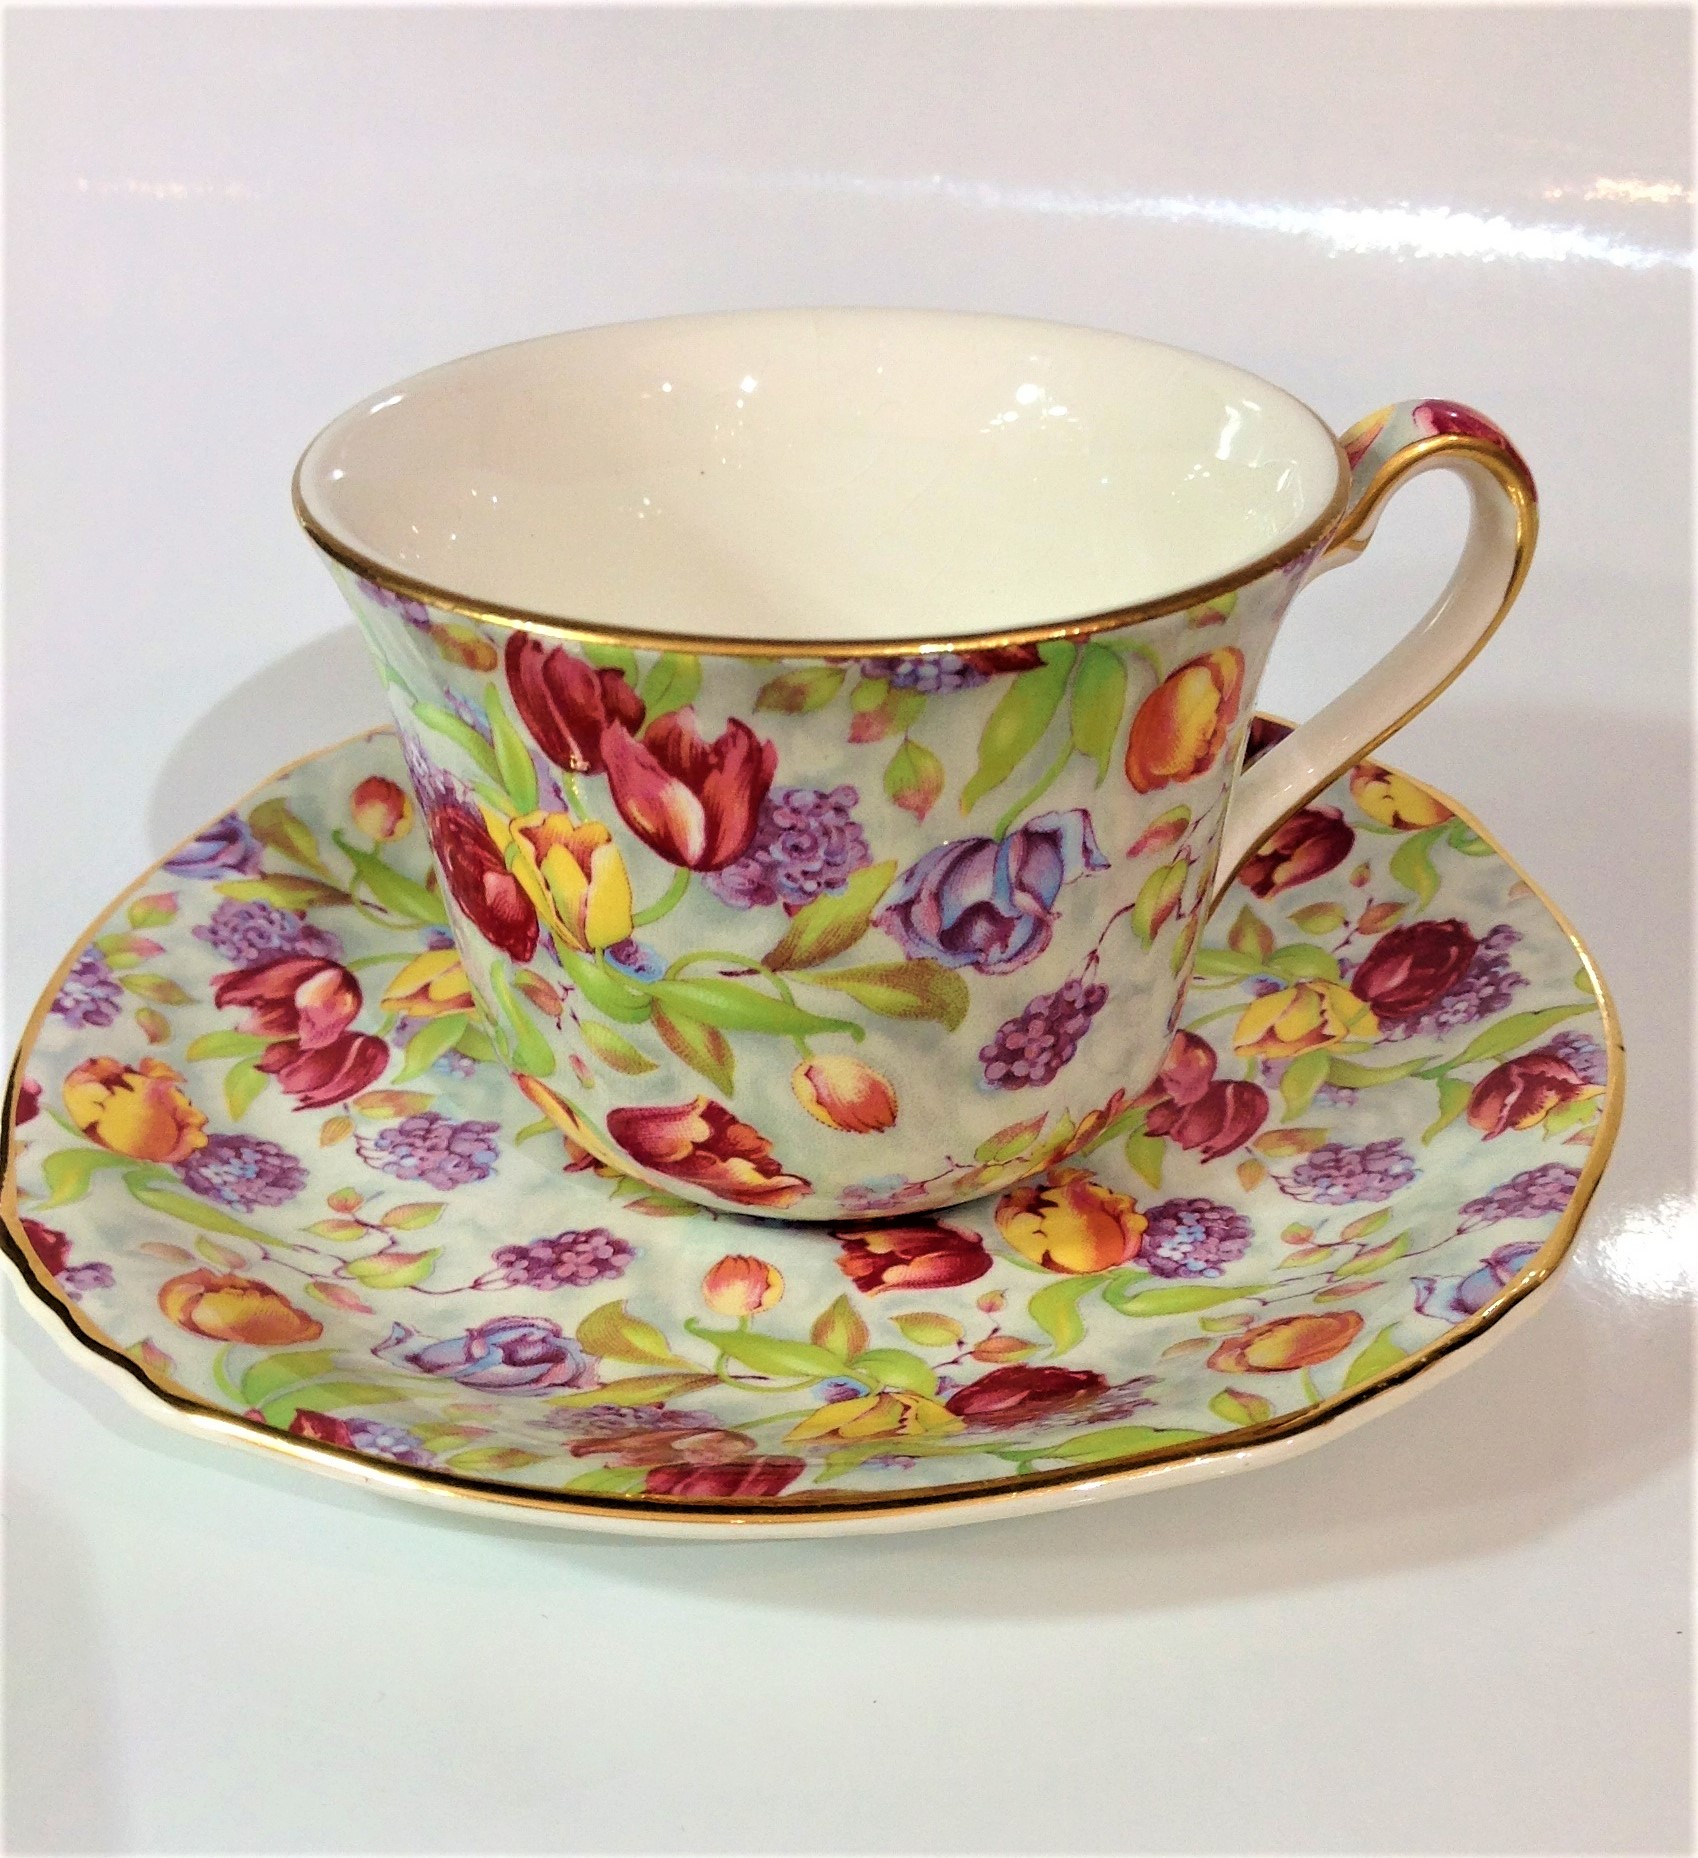 Stratford Cup and Saucer